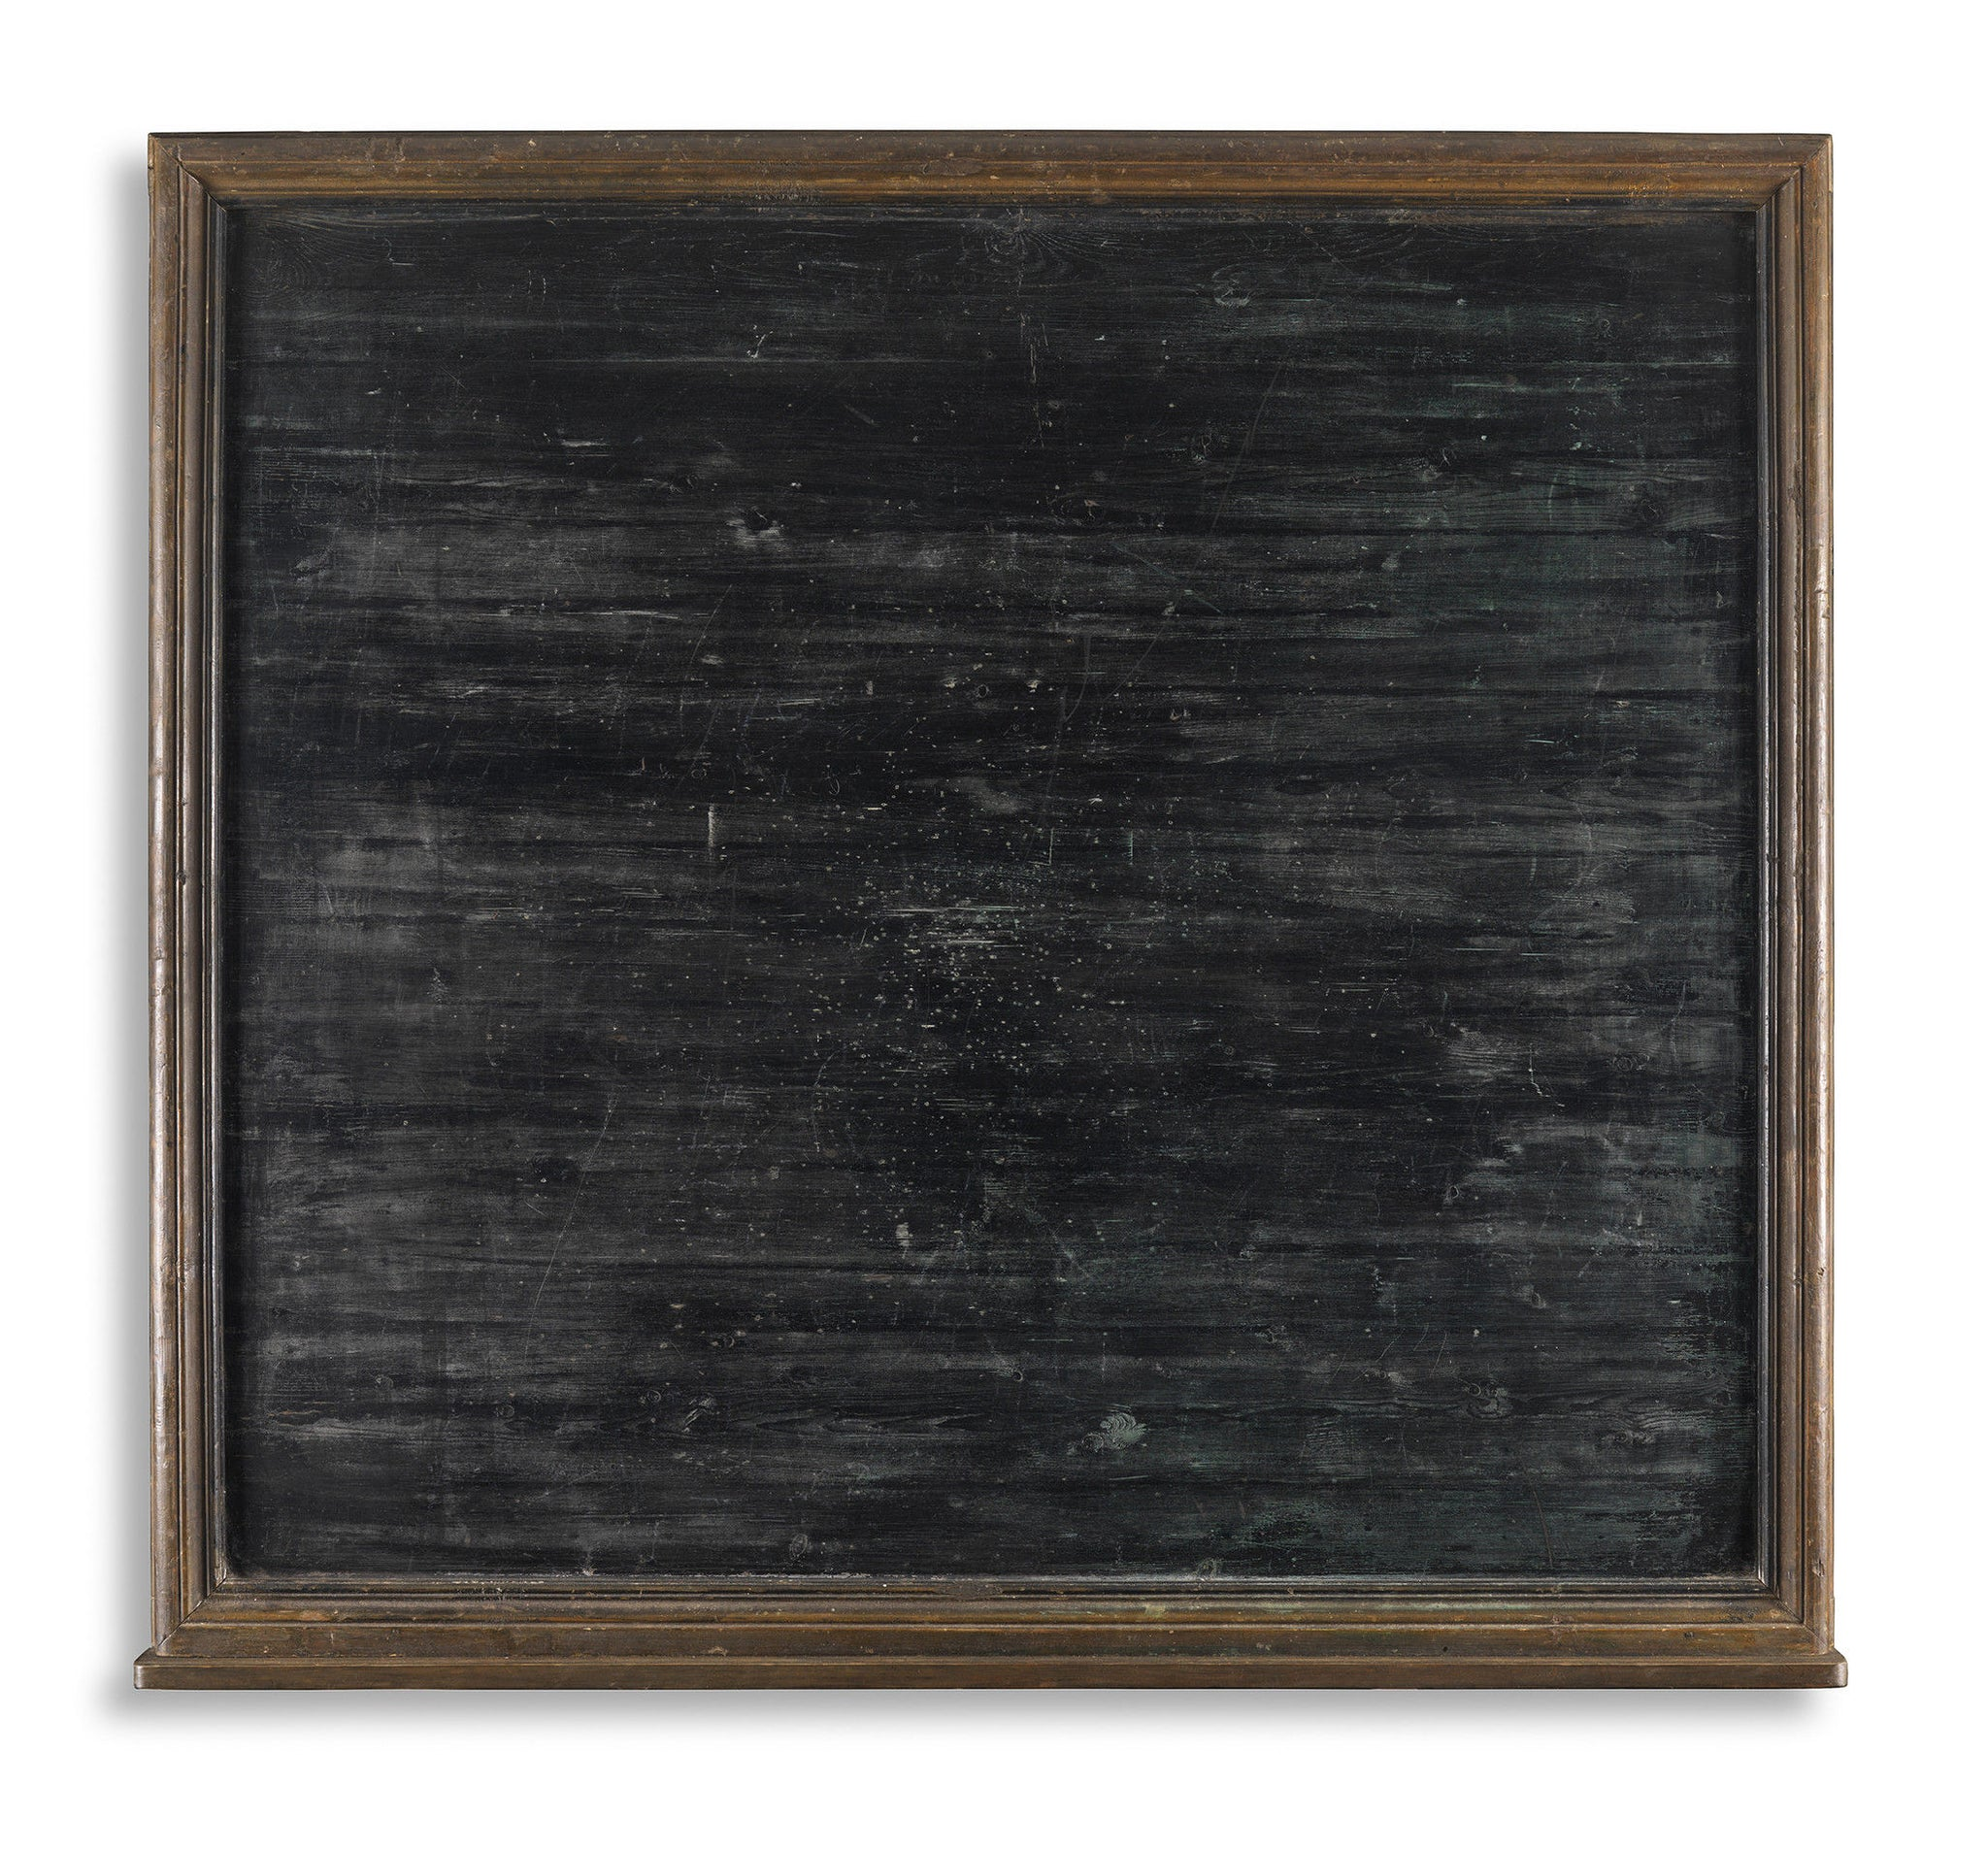 Early Gustavian Vernacular Blackboard